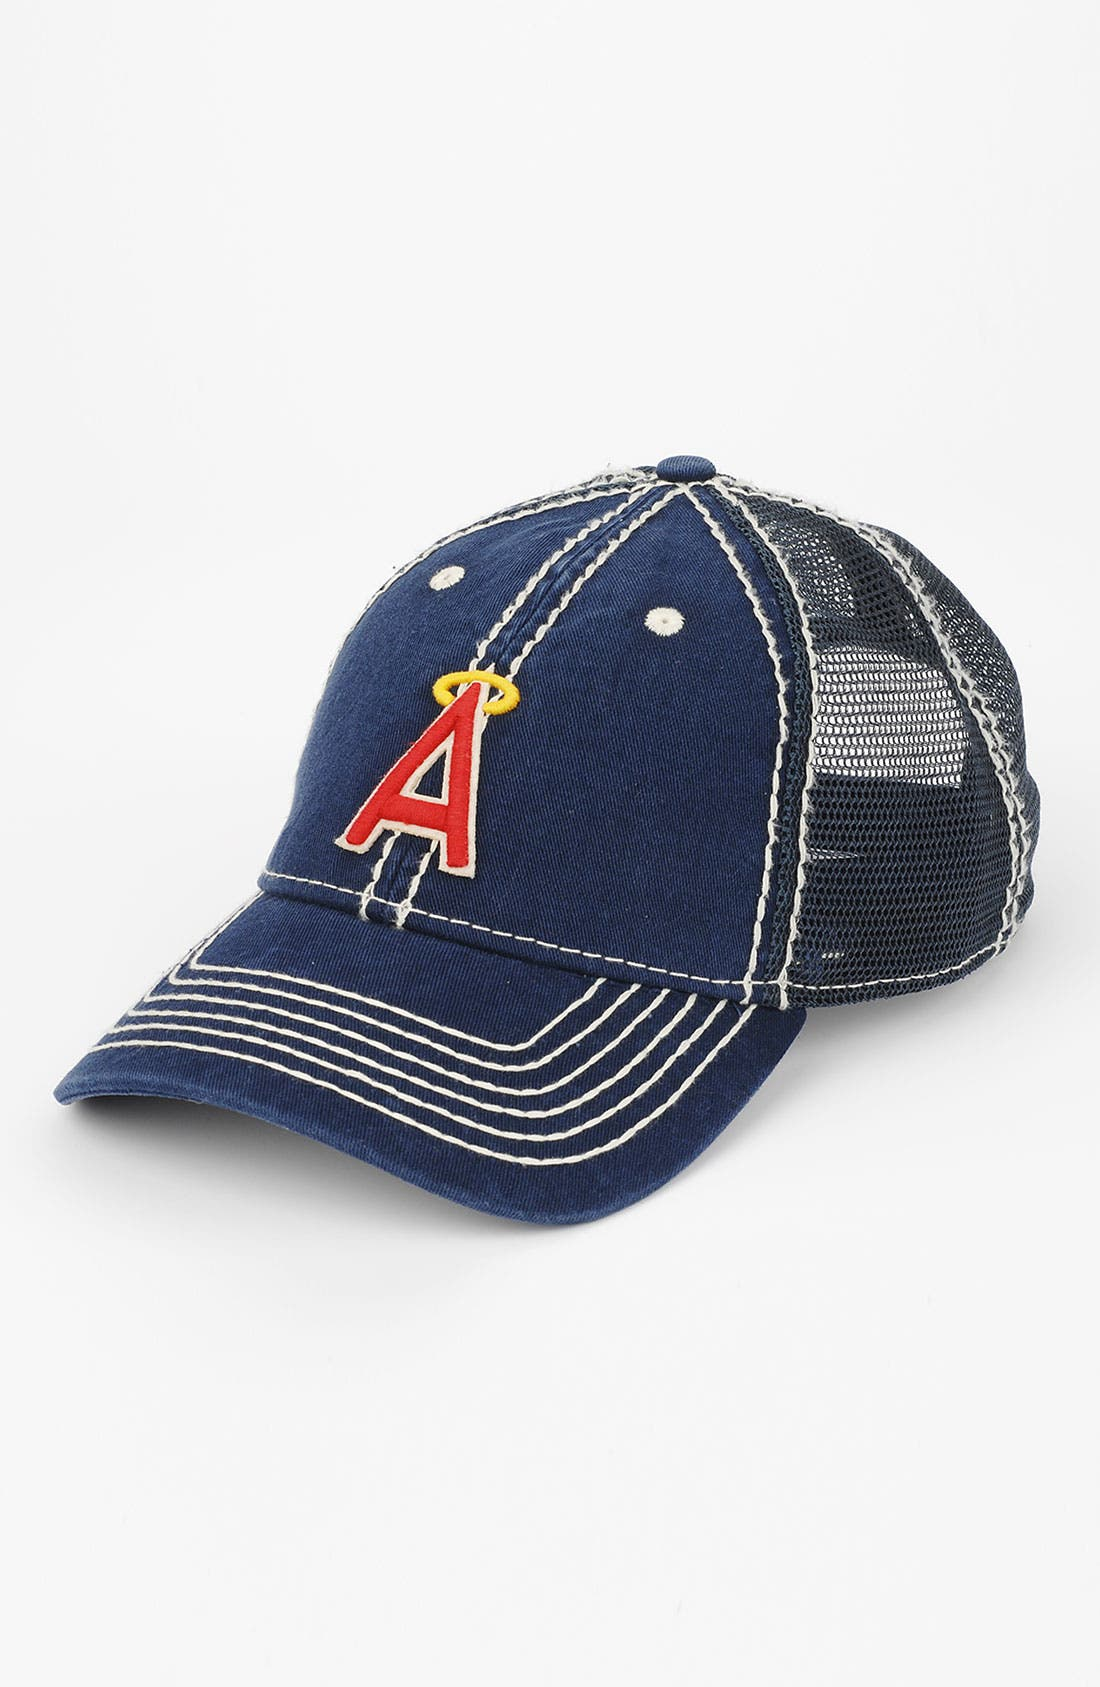 Main Image - American Needle 'Angels' Mesh Back Baseball Cap